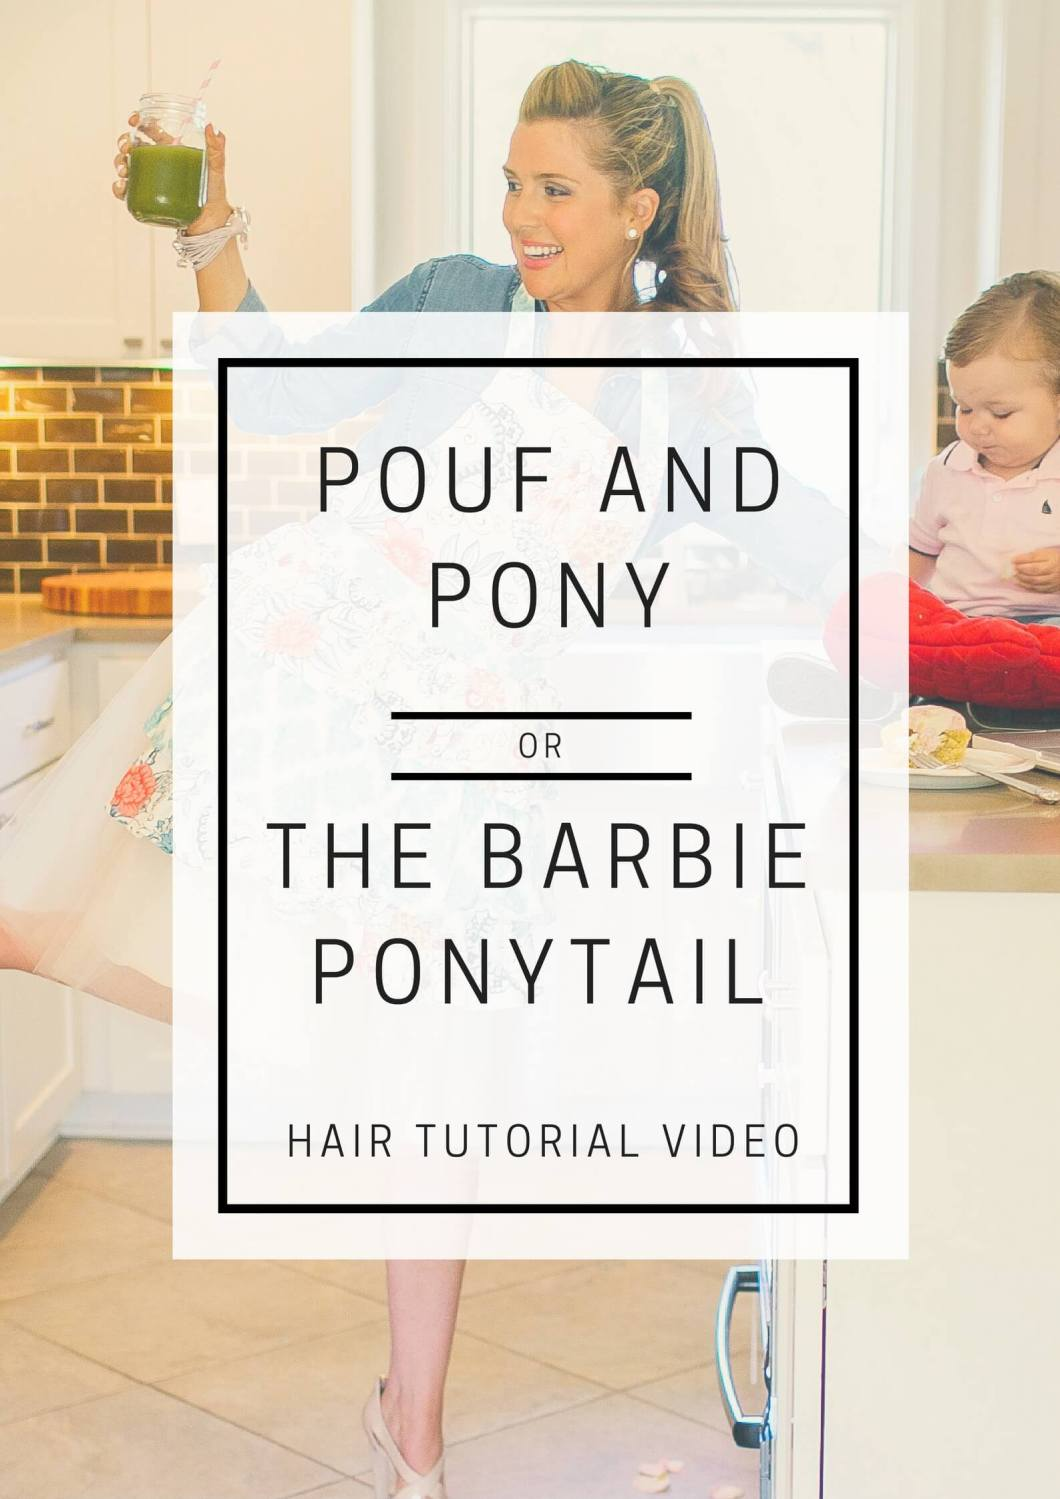 Barbie Ponytail // Hair Tutorial Video // www.thehisfor.com